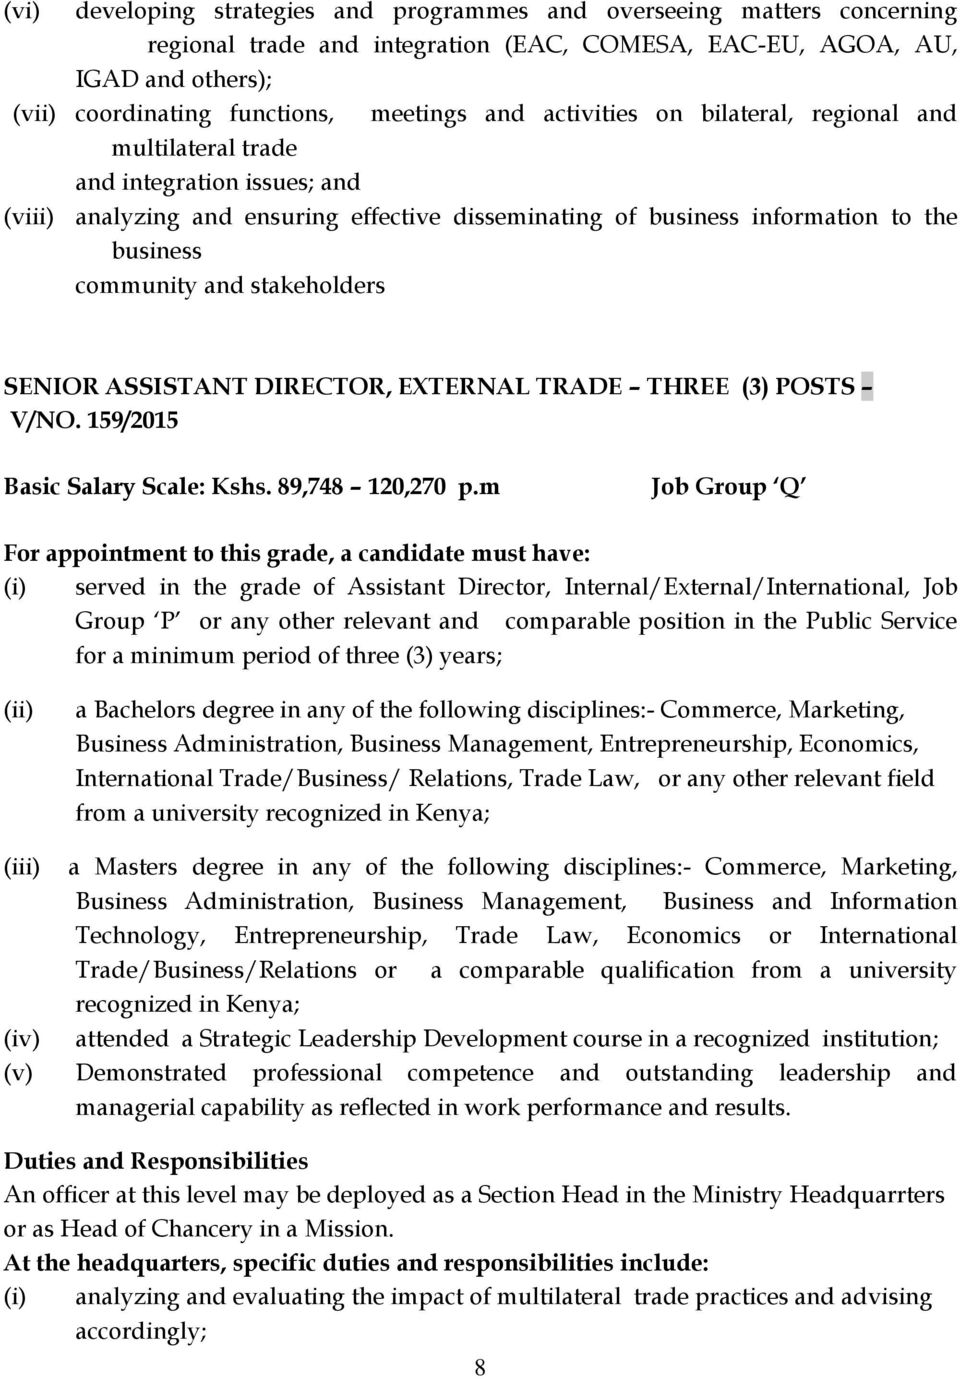 stakeholders SENIOR ASSISTANT DIRECTOR, EXTERNAL TRADE THREE (3) POSTS V/NO. 159/2015 Basic Salary Scale: Kshs. 89,748 120,270 p.